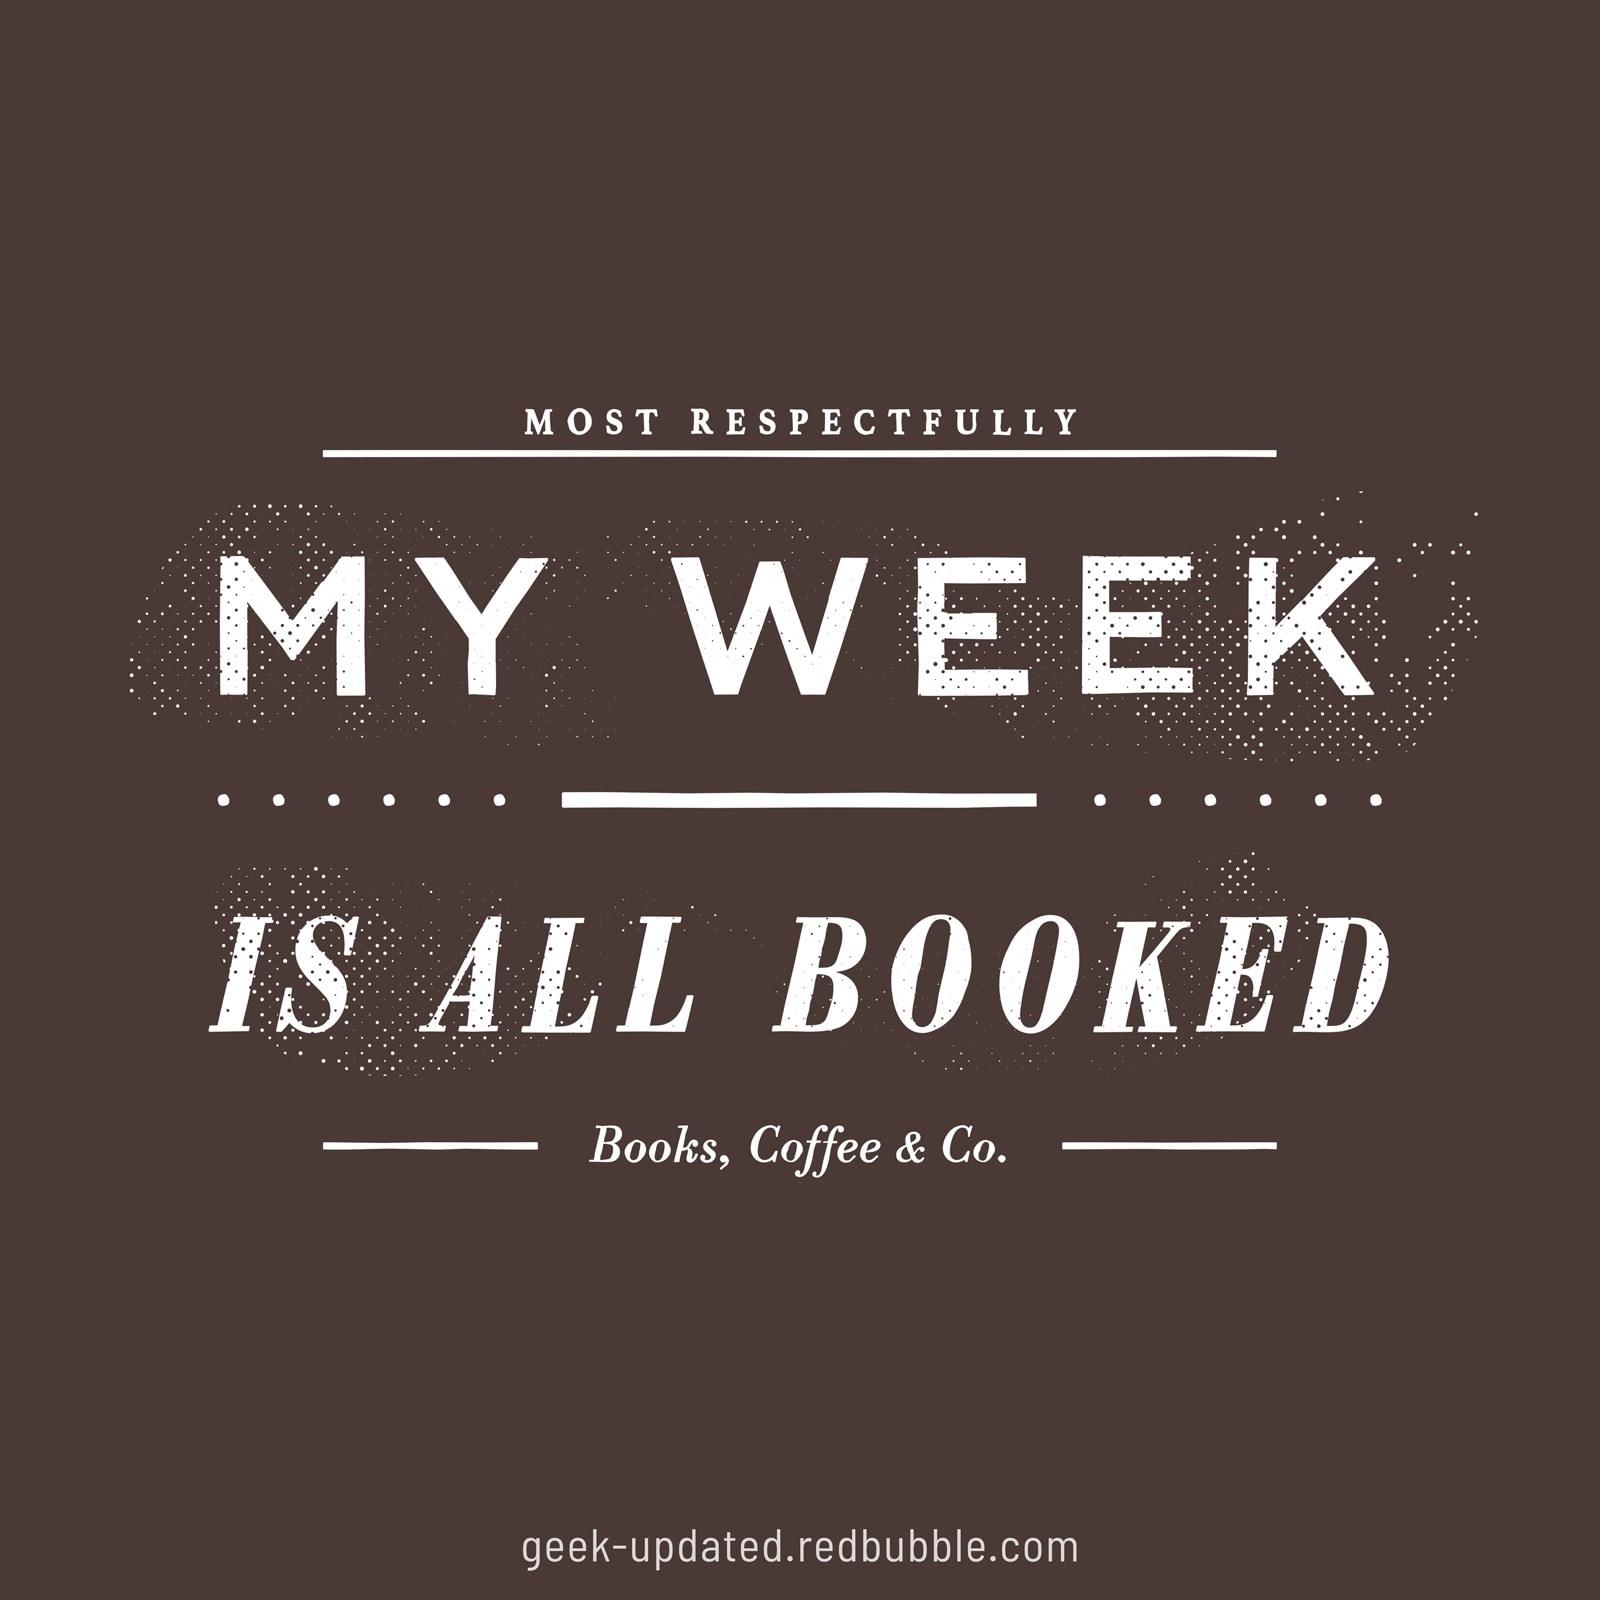 My week is all booked - design by Piotr Kowalczyk